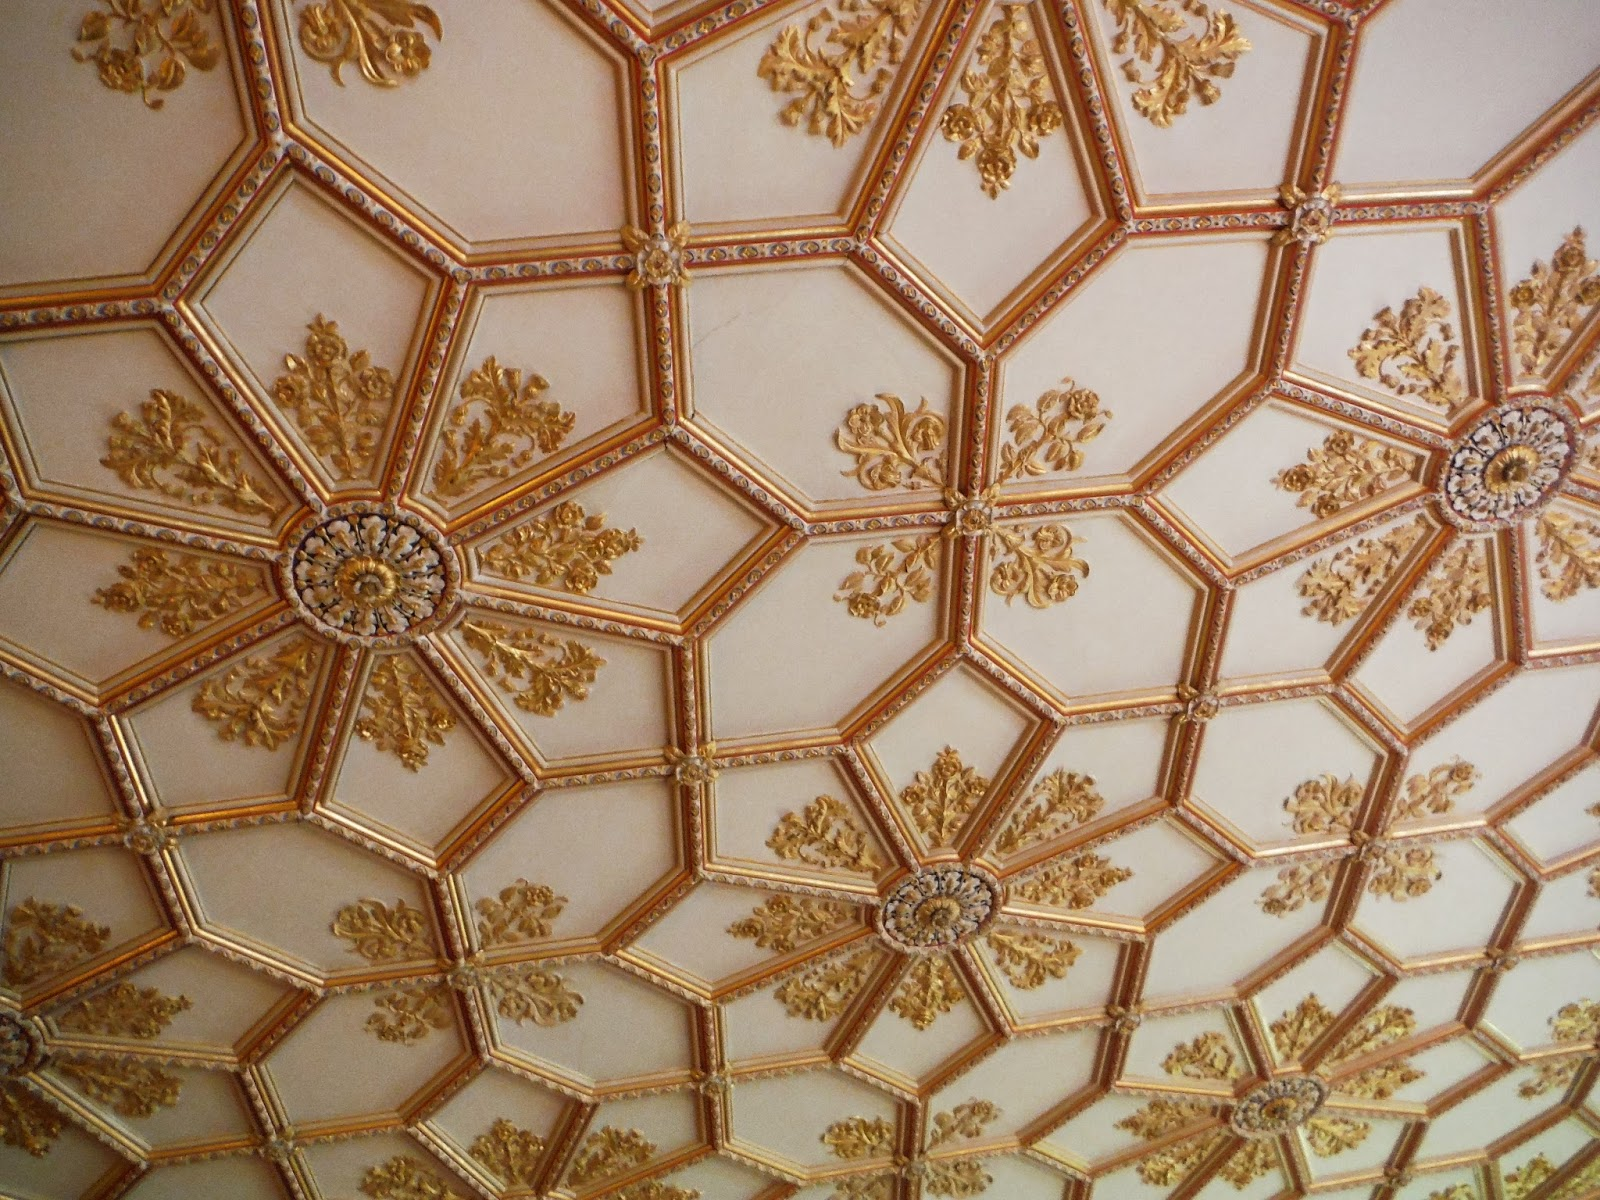 an intricate ceiling inside the main house at Charlecote Park